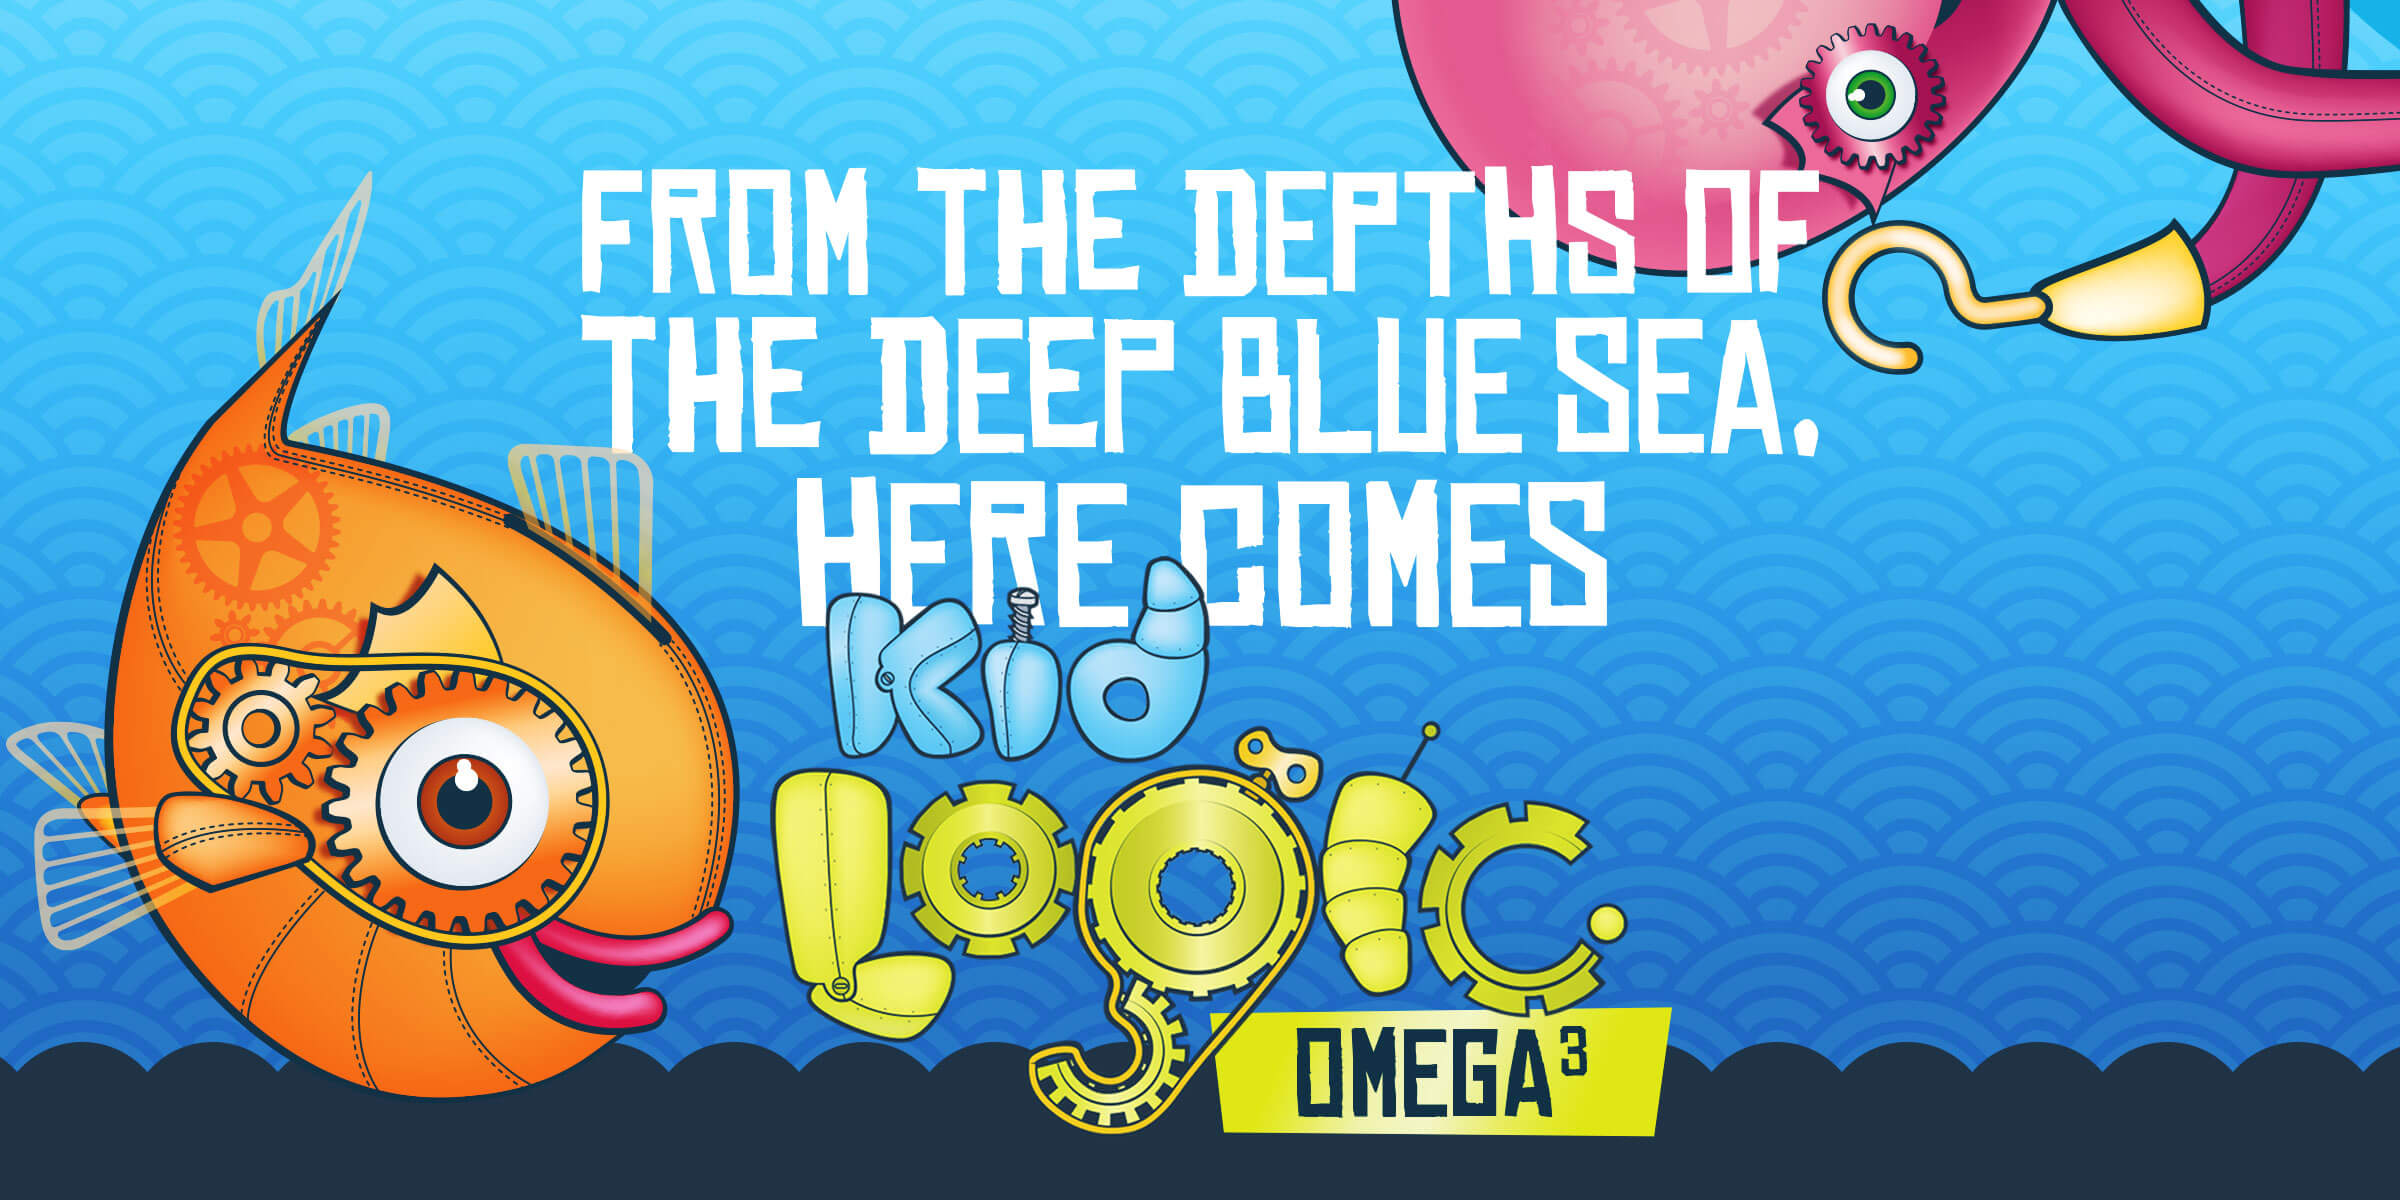 Creating a bright fun identity and packaging for chewable omega 3 product, Kid Logic